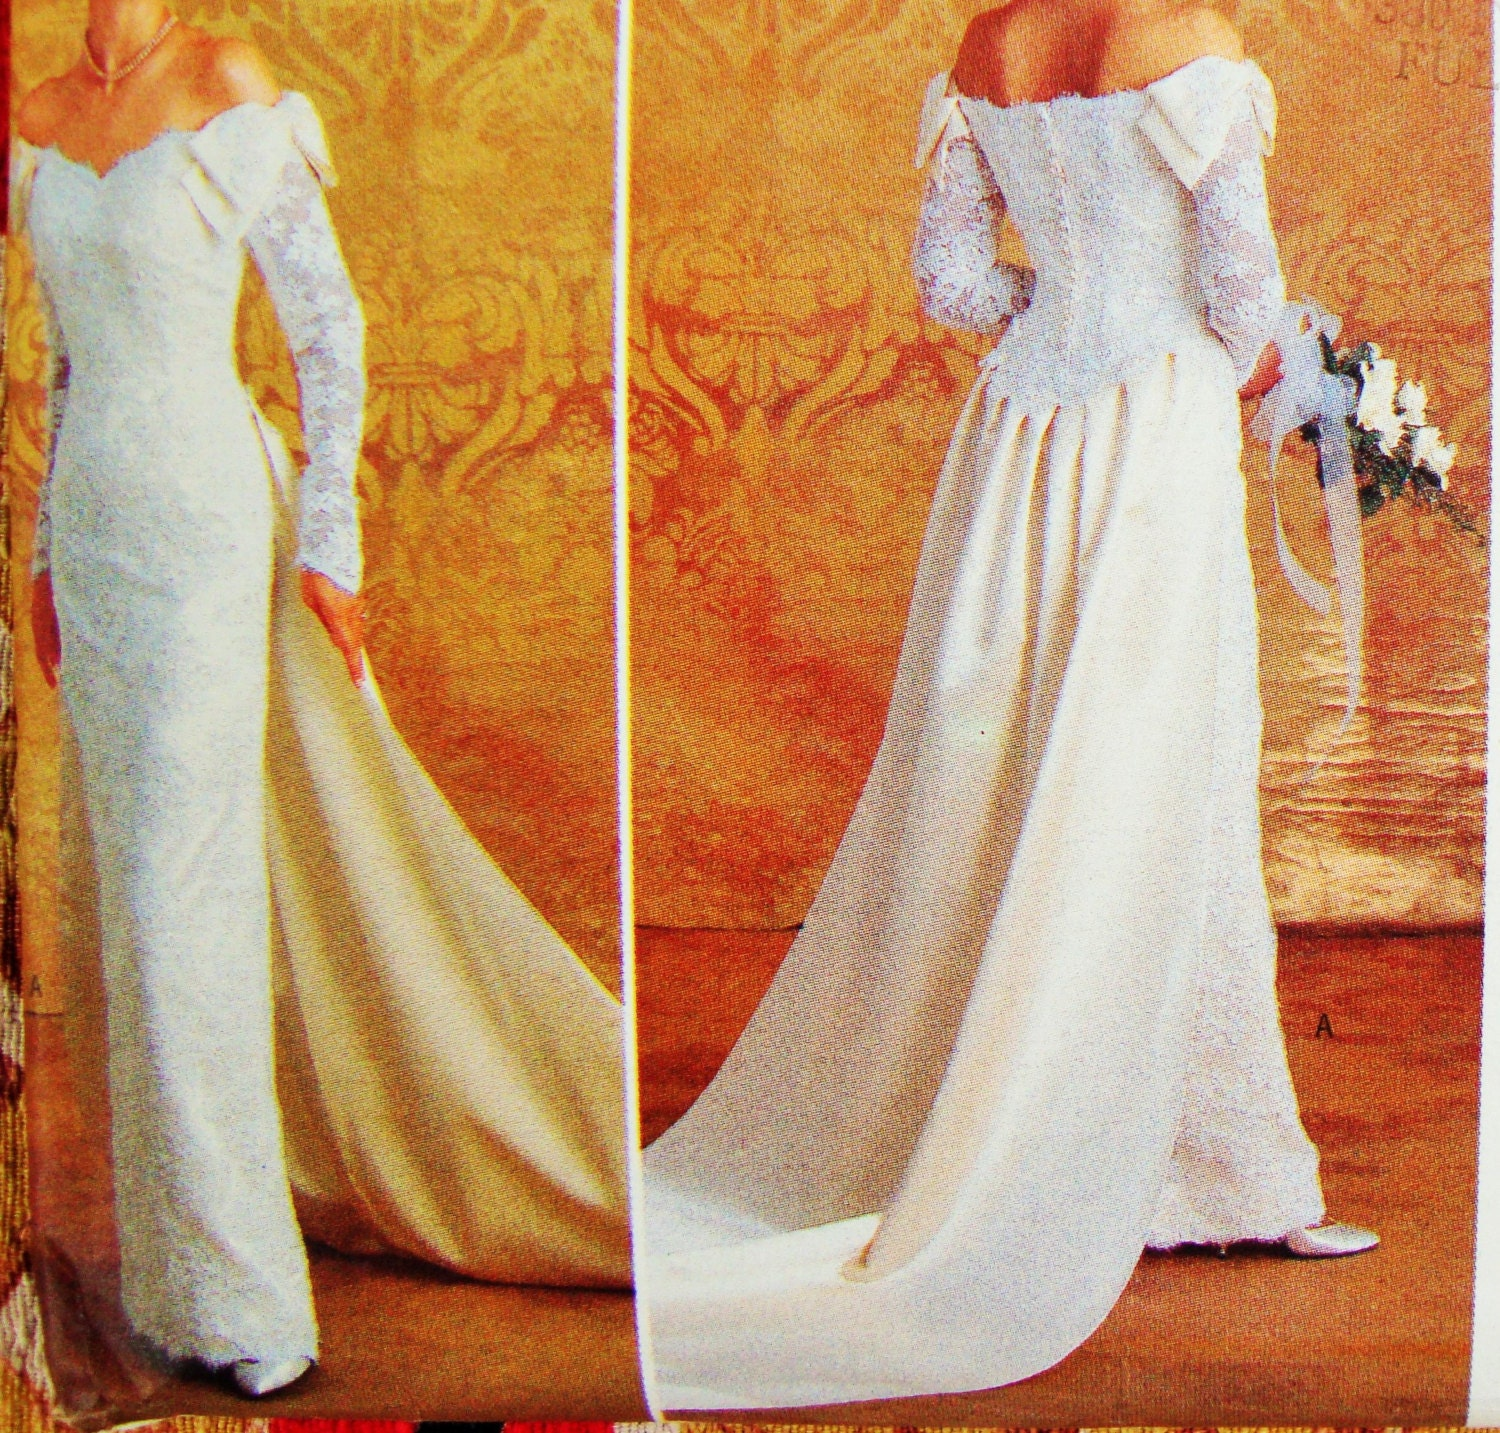 Butterick bridal dress sewing pattern no 4288 by for Butterick wedding dress patterns